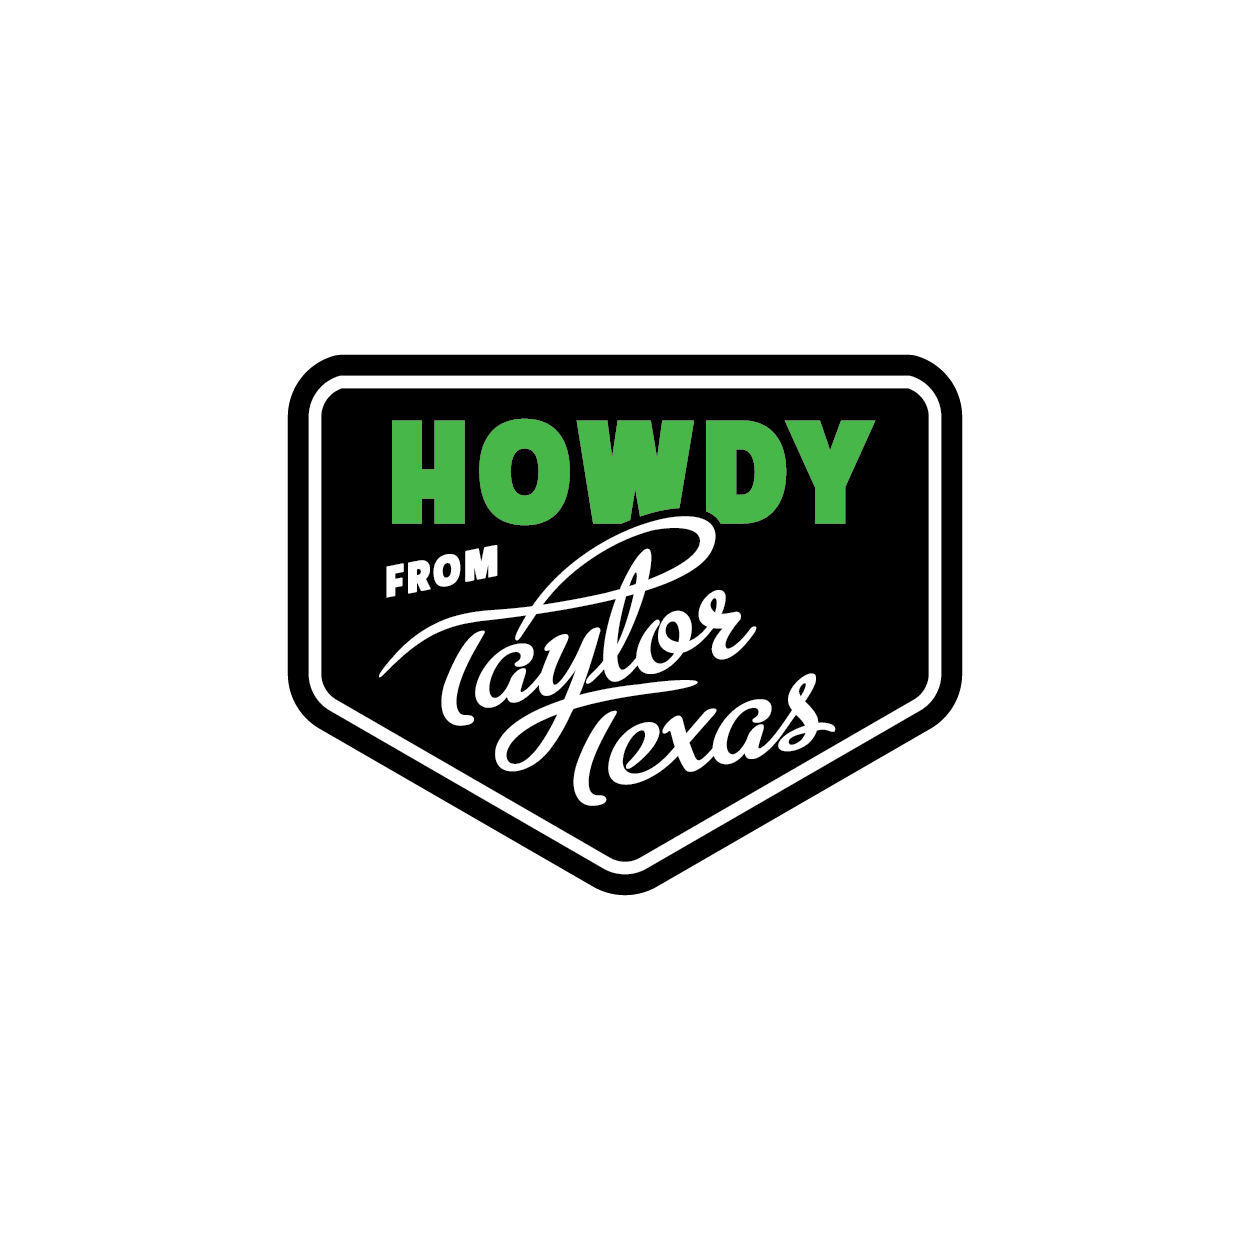 26-howdy.png